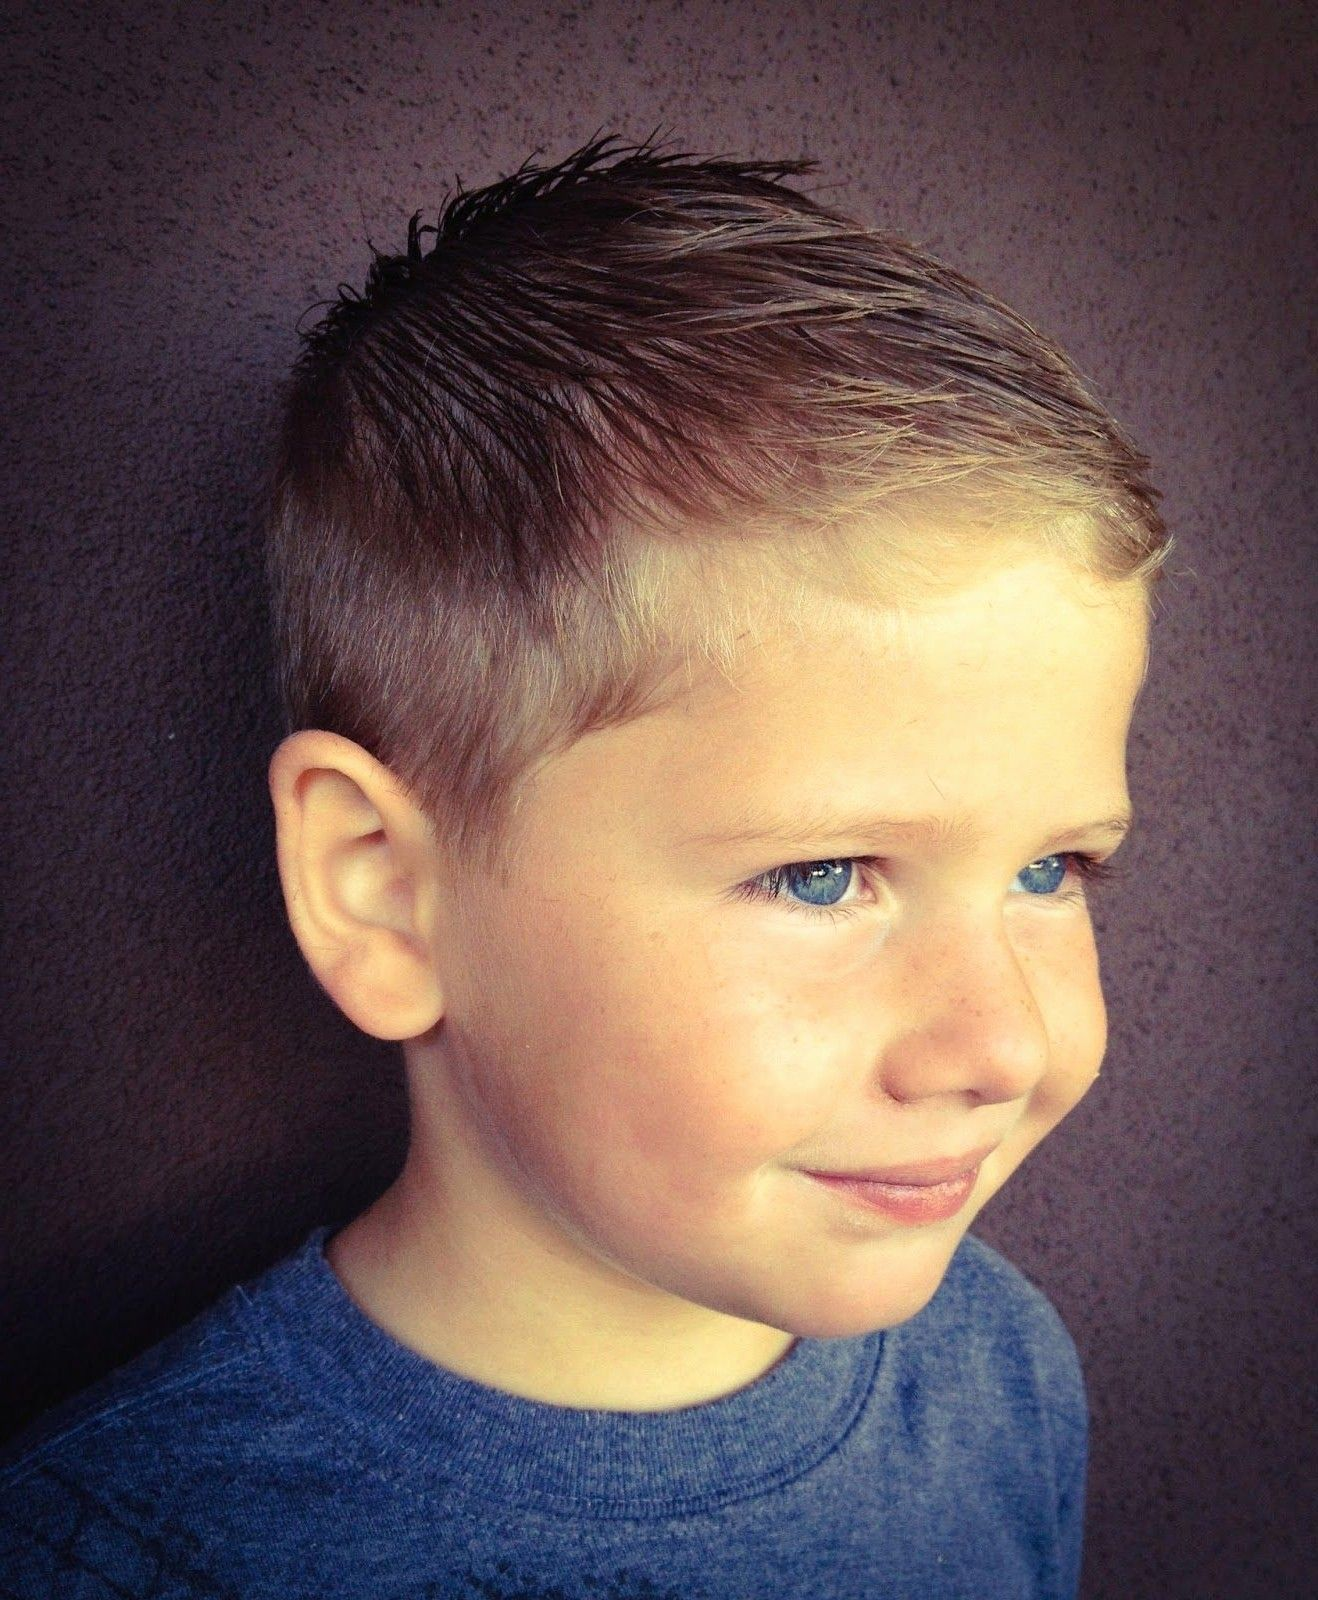 13 10 Year Old Boy Haircuts Ideas Boy Haircuts Short Boys Haircuts Toddler Boy Haircuts